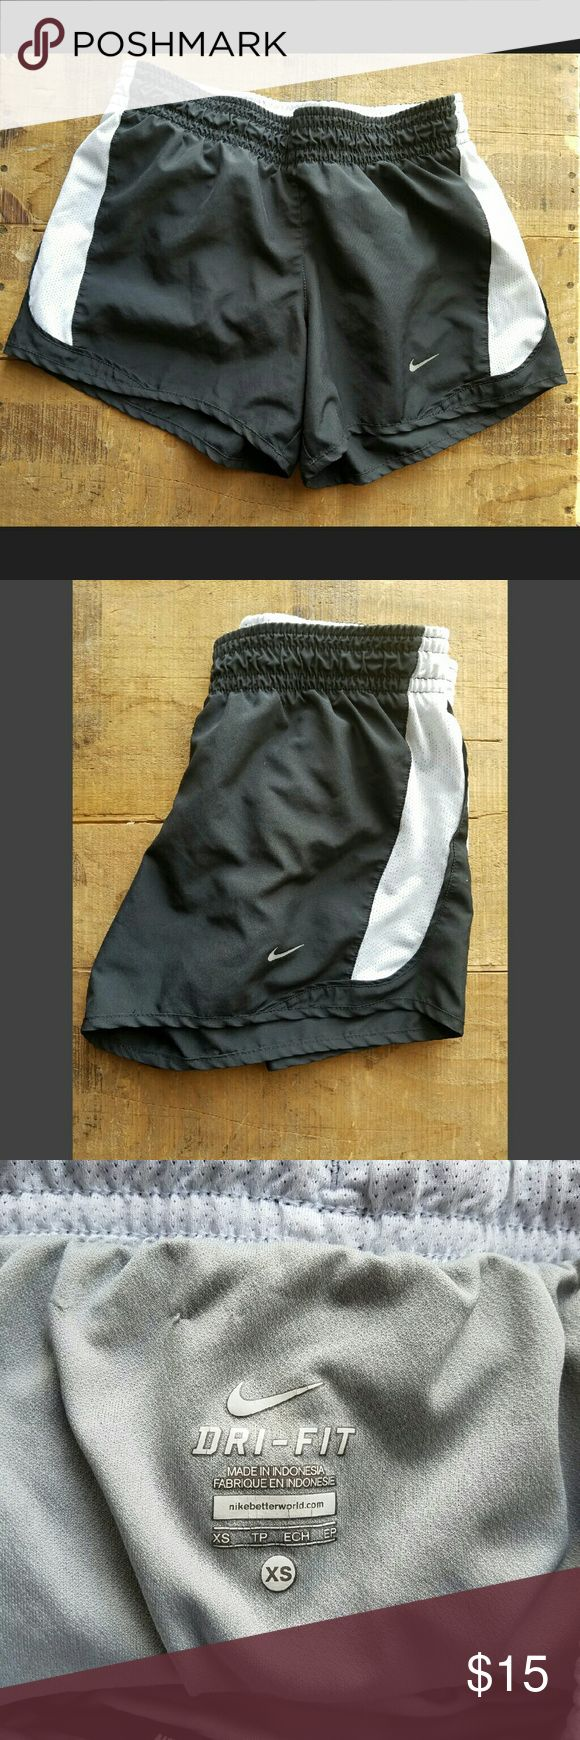 Black and White Nike Dri Fit Shorts Excellent condition, no flaws or stains. Has a built in liner.  Reasonable offers accepted, bundles discounted. Nike Shorts